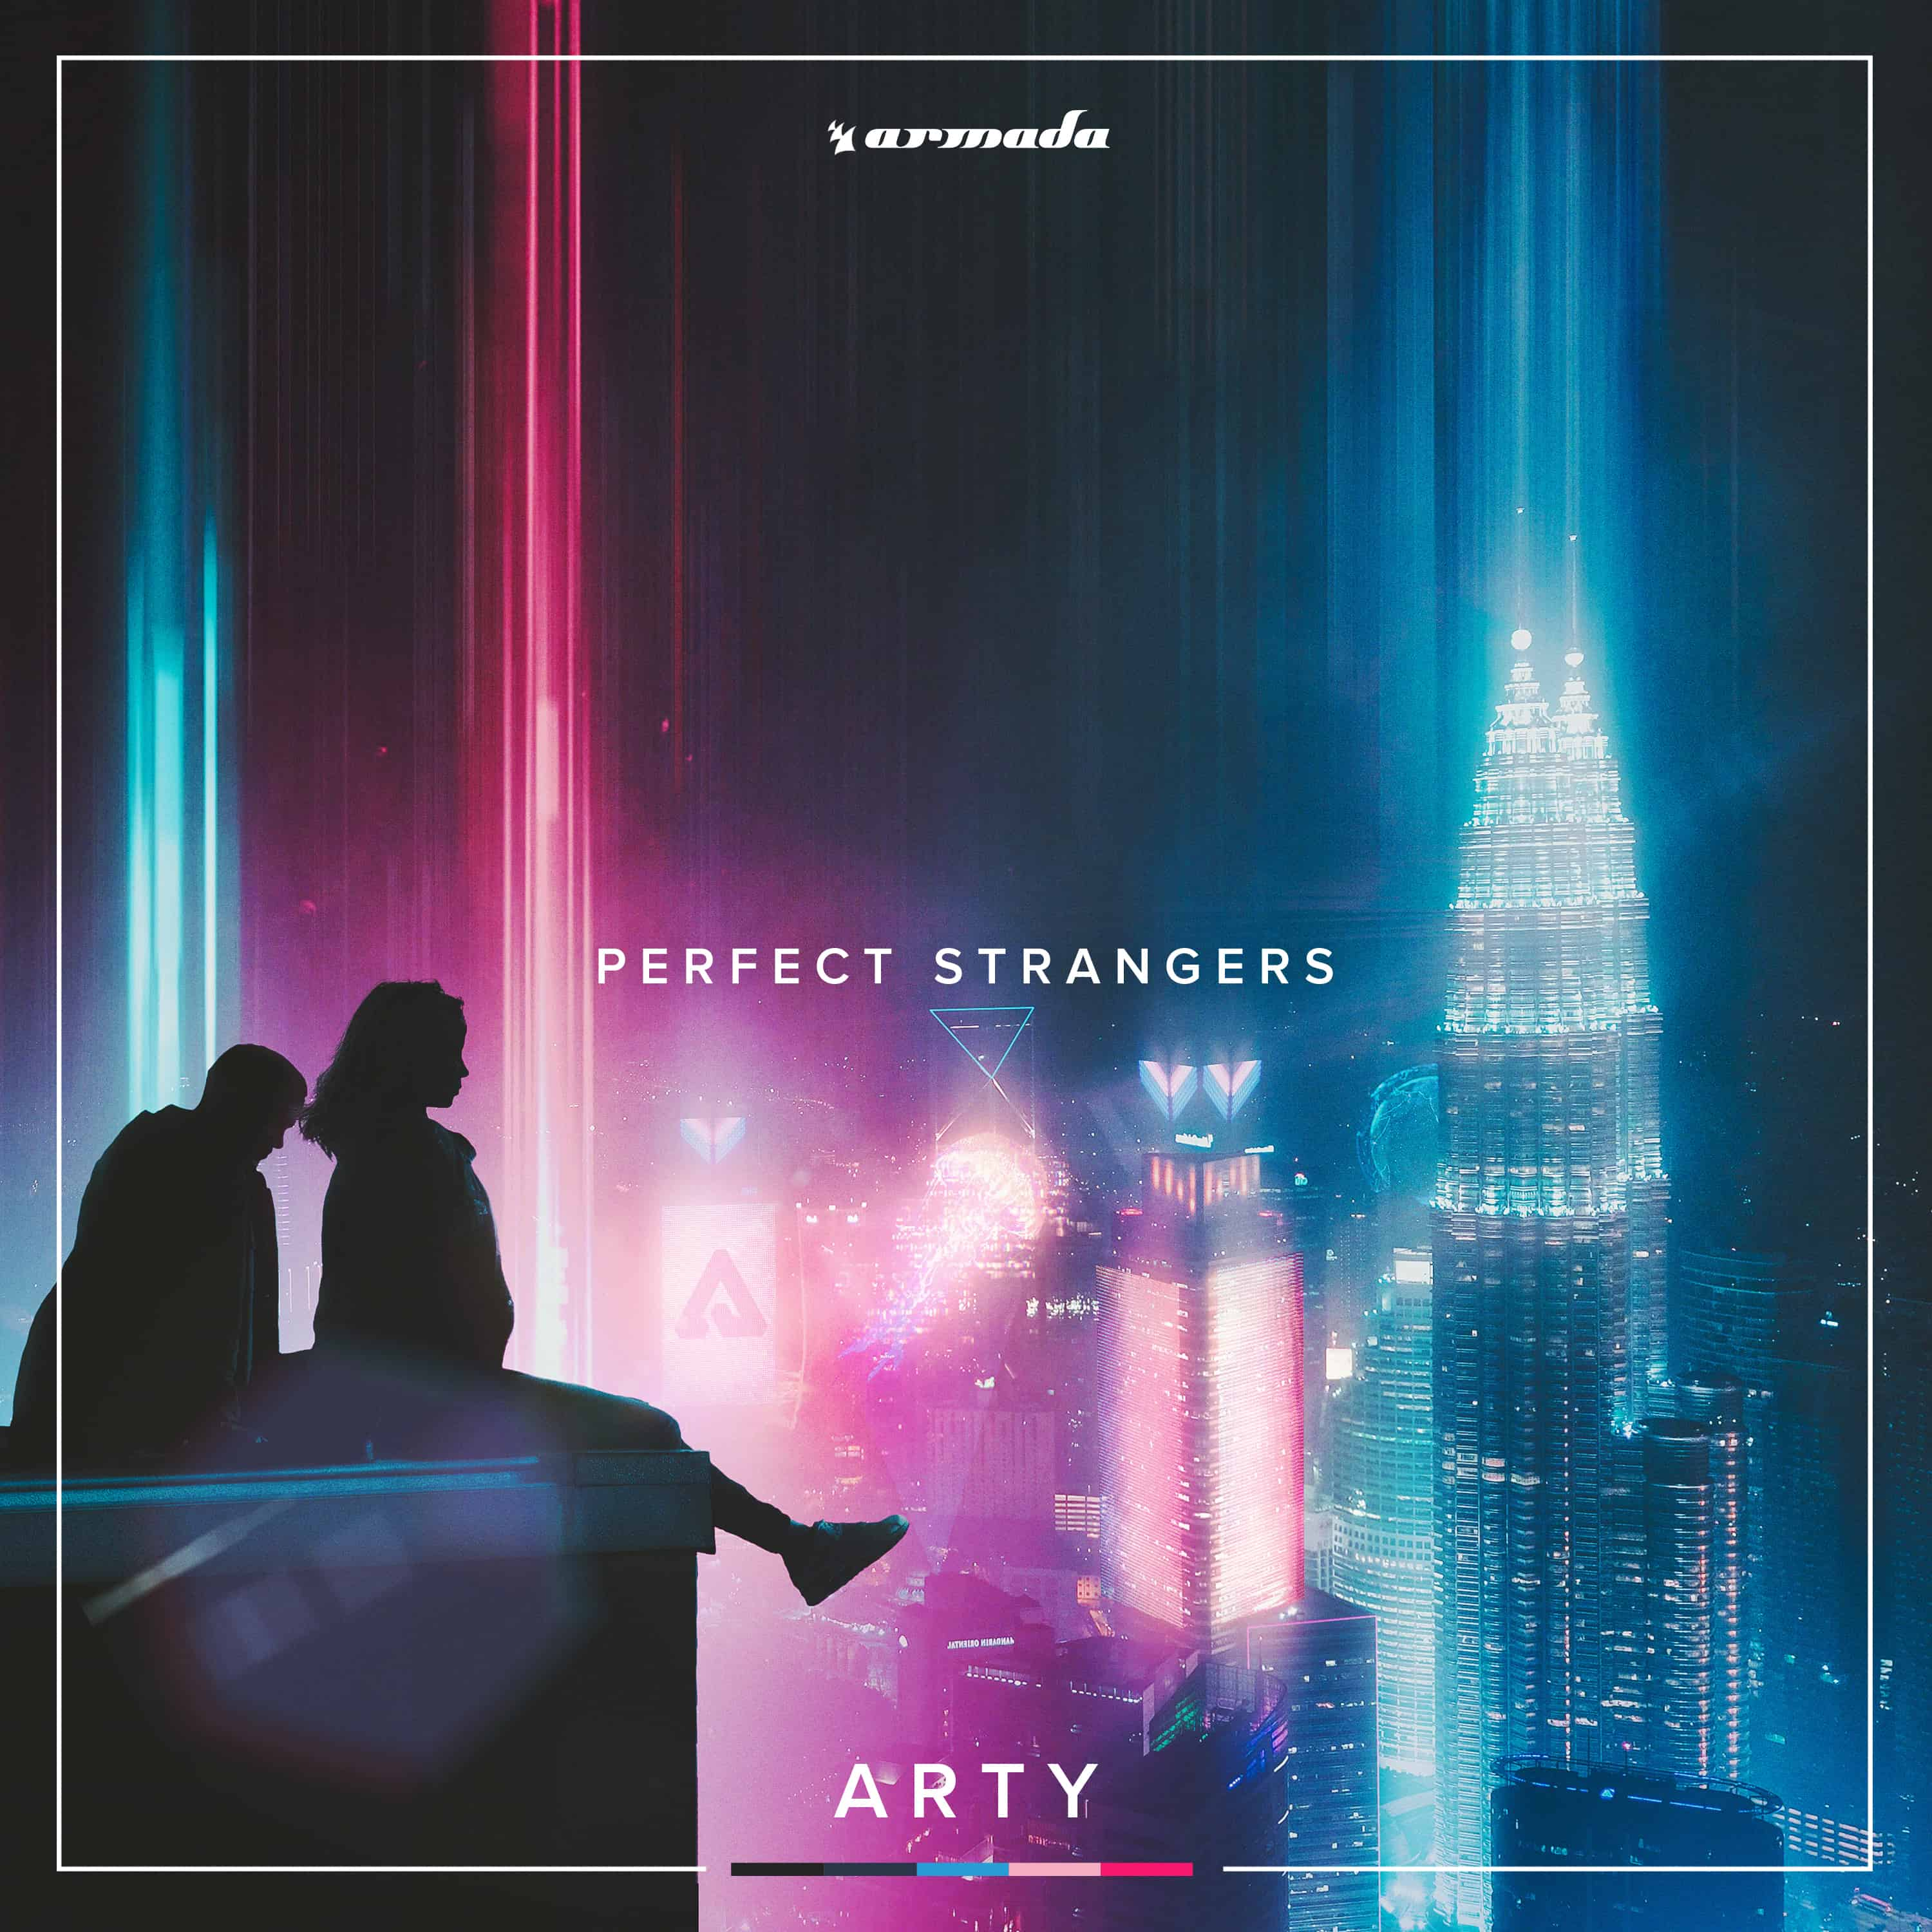 ARTY continues onslaught of amazing singles with Perfect Strangers